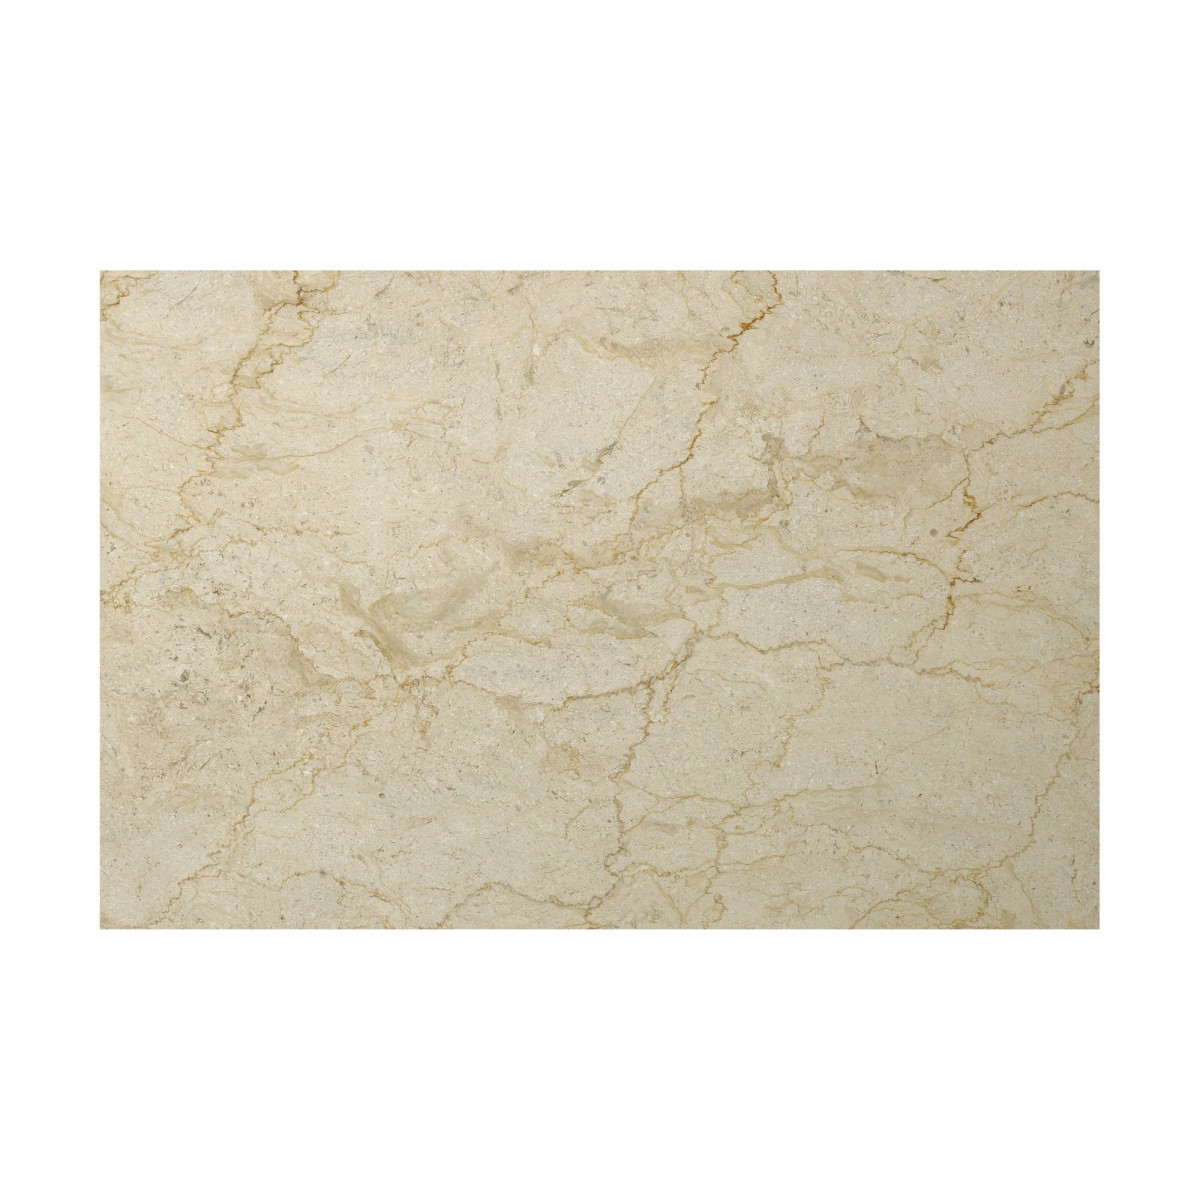 Bathroom tiles for walls floors buy online british ceramic tile bali cream polished mosaic dailygadgetfo Choice Image